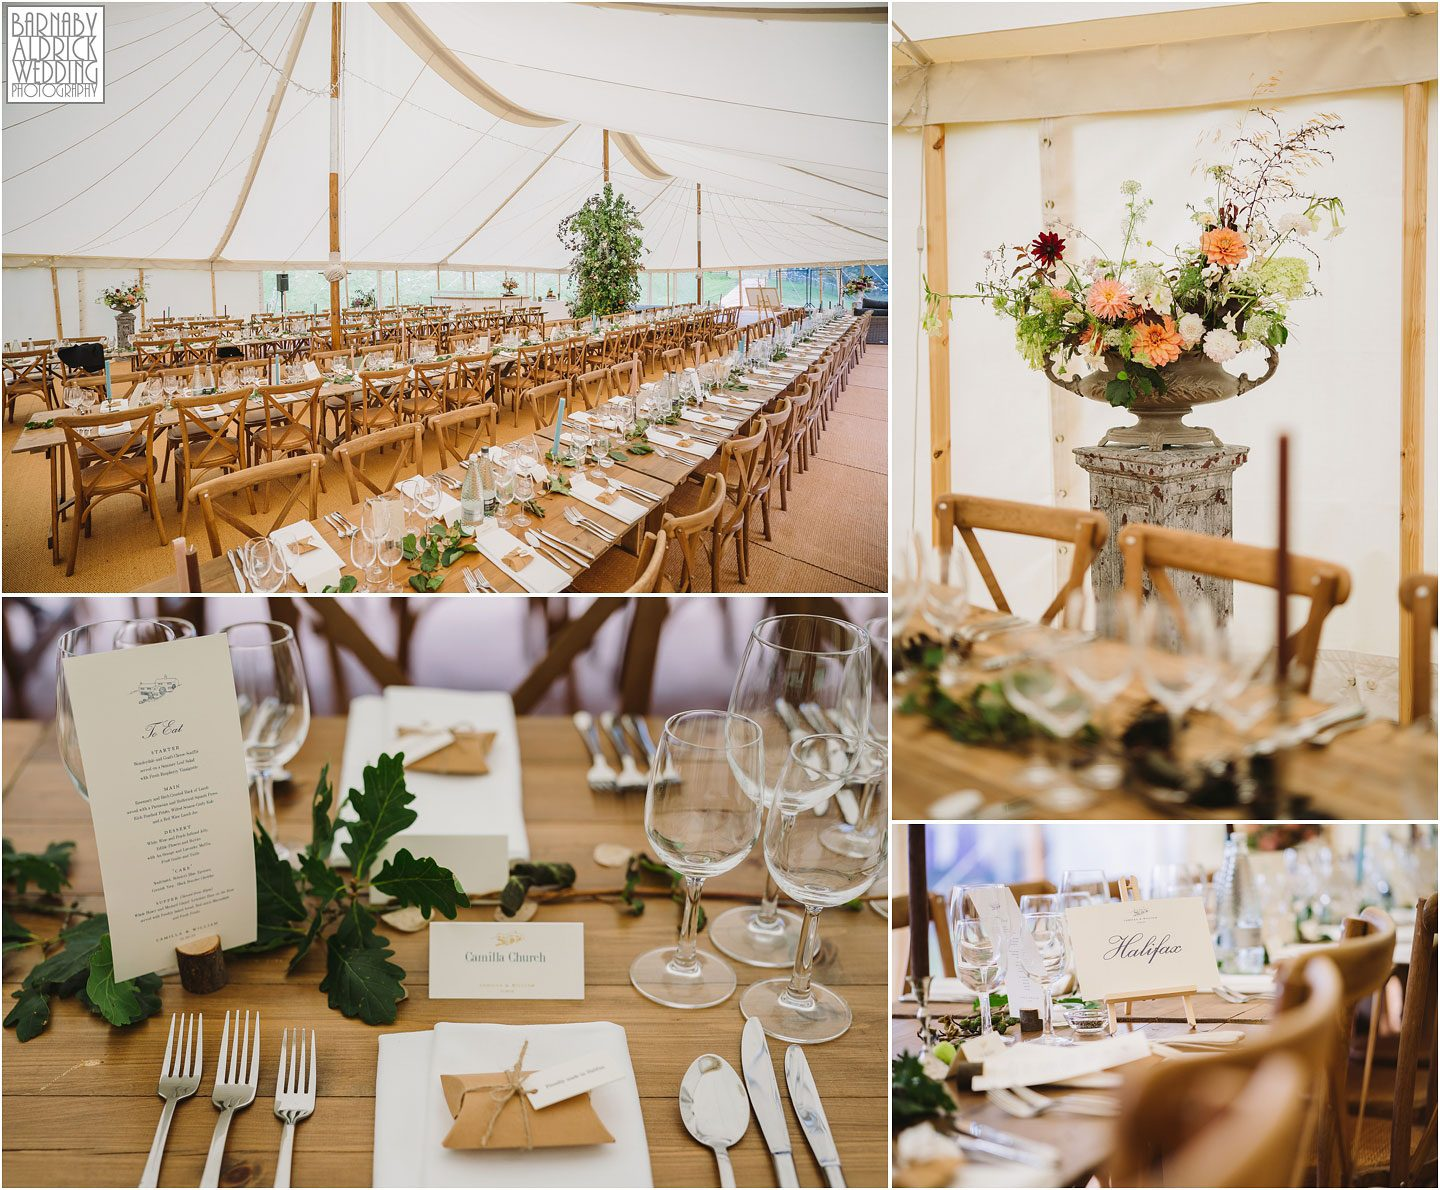 Garden Marquee Wedding Photographs, Yorkshire garden Marquee Wedding hire company Yorkshire Garden Marquee hire, Marquee wedding Photography